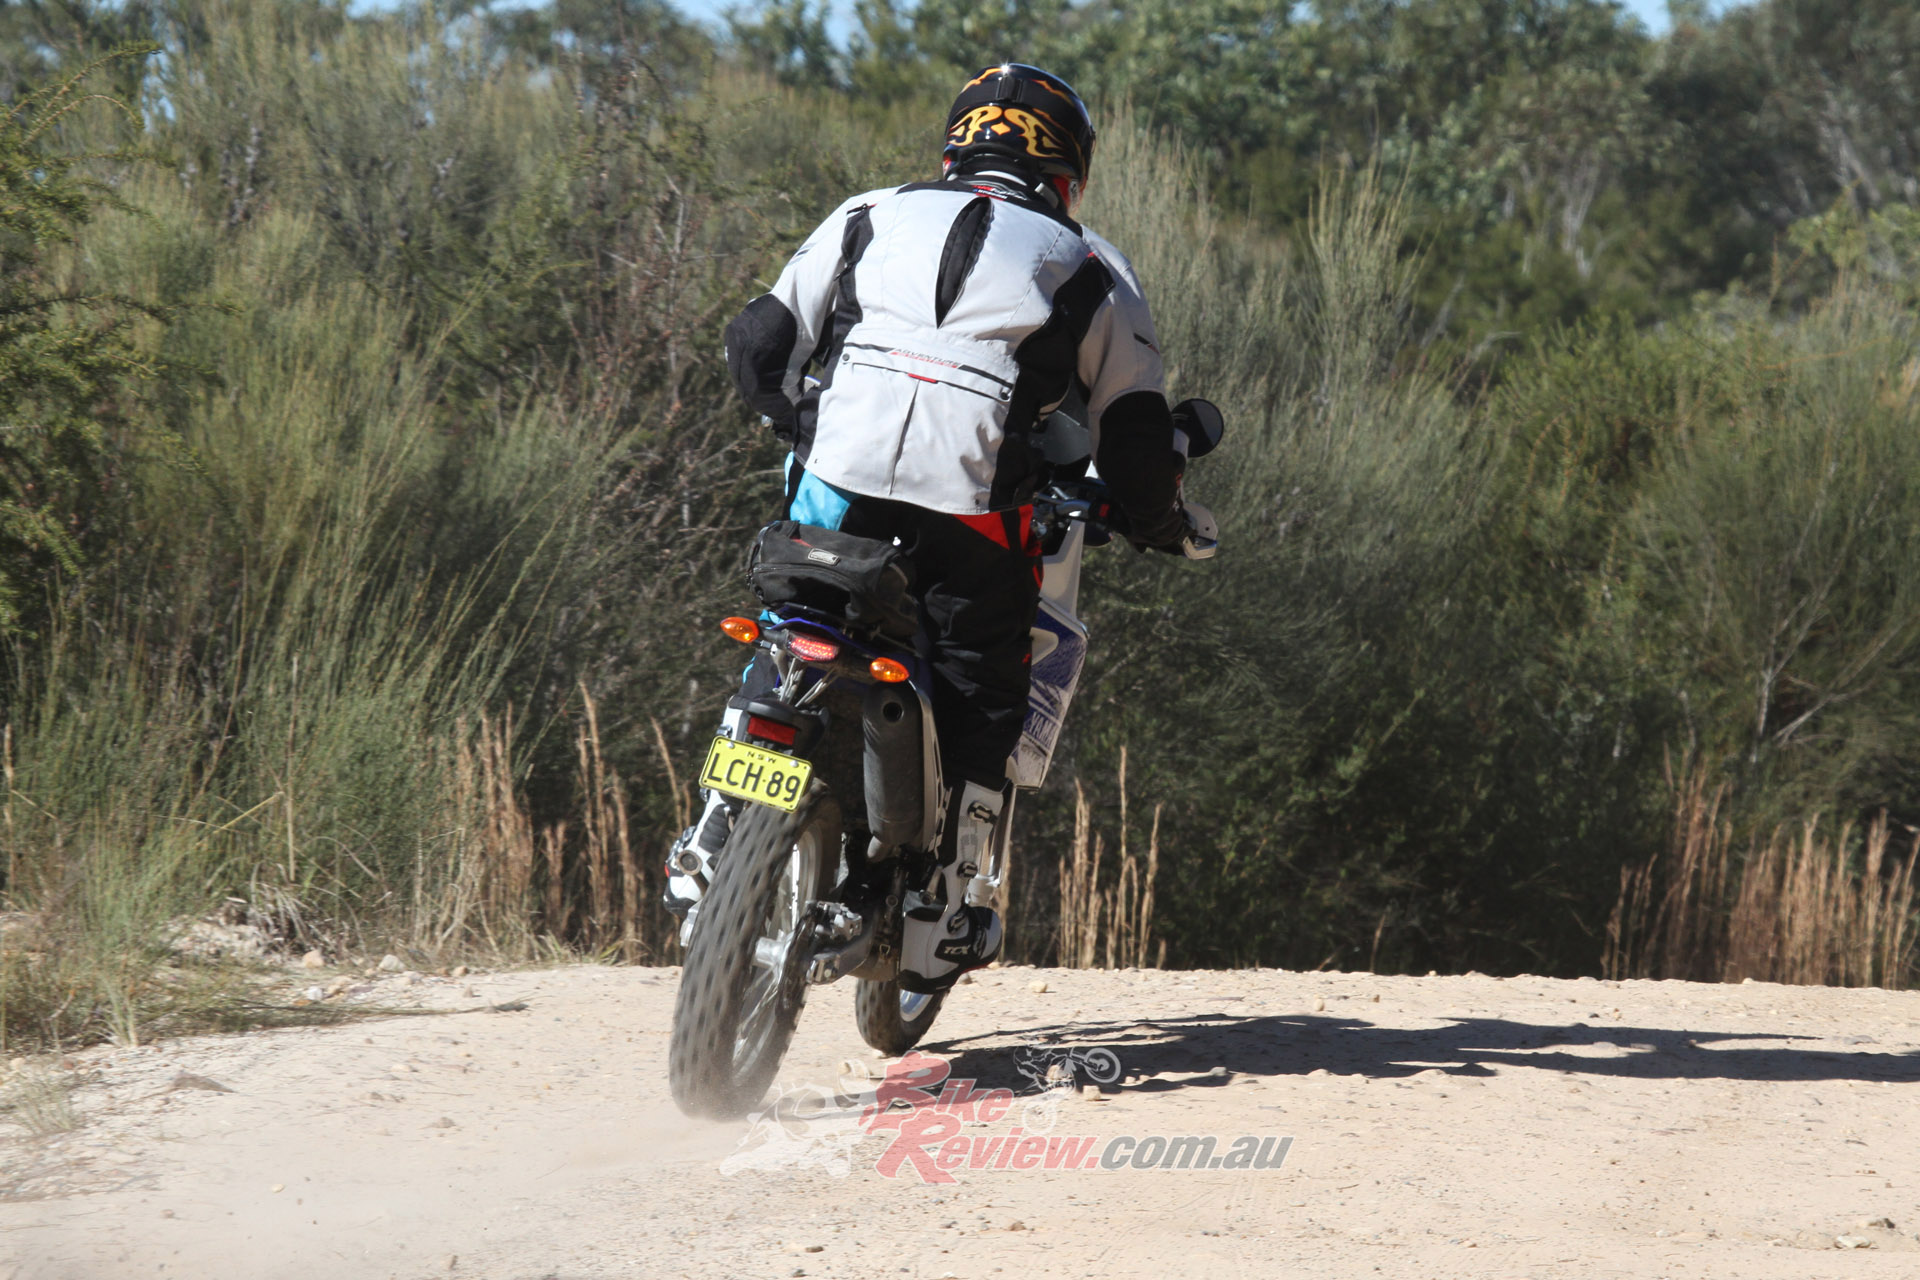 We've got a set of Bridgestone E50s to replace the Trail Wings on the WR, for more serious off road ability.